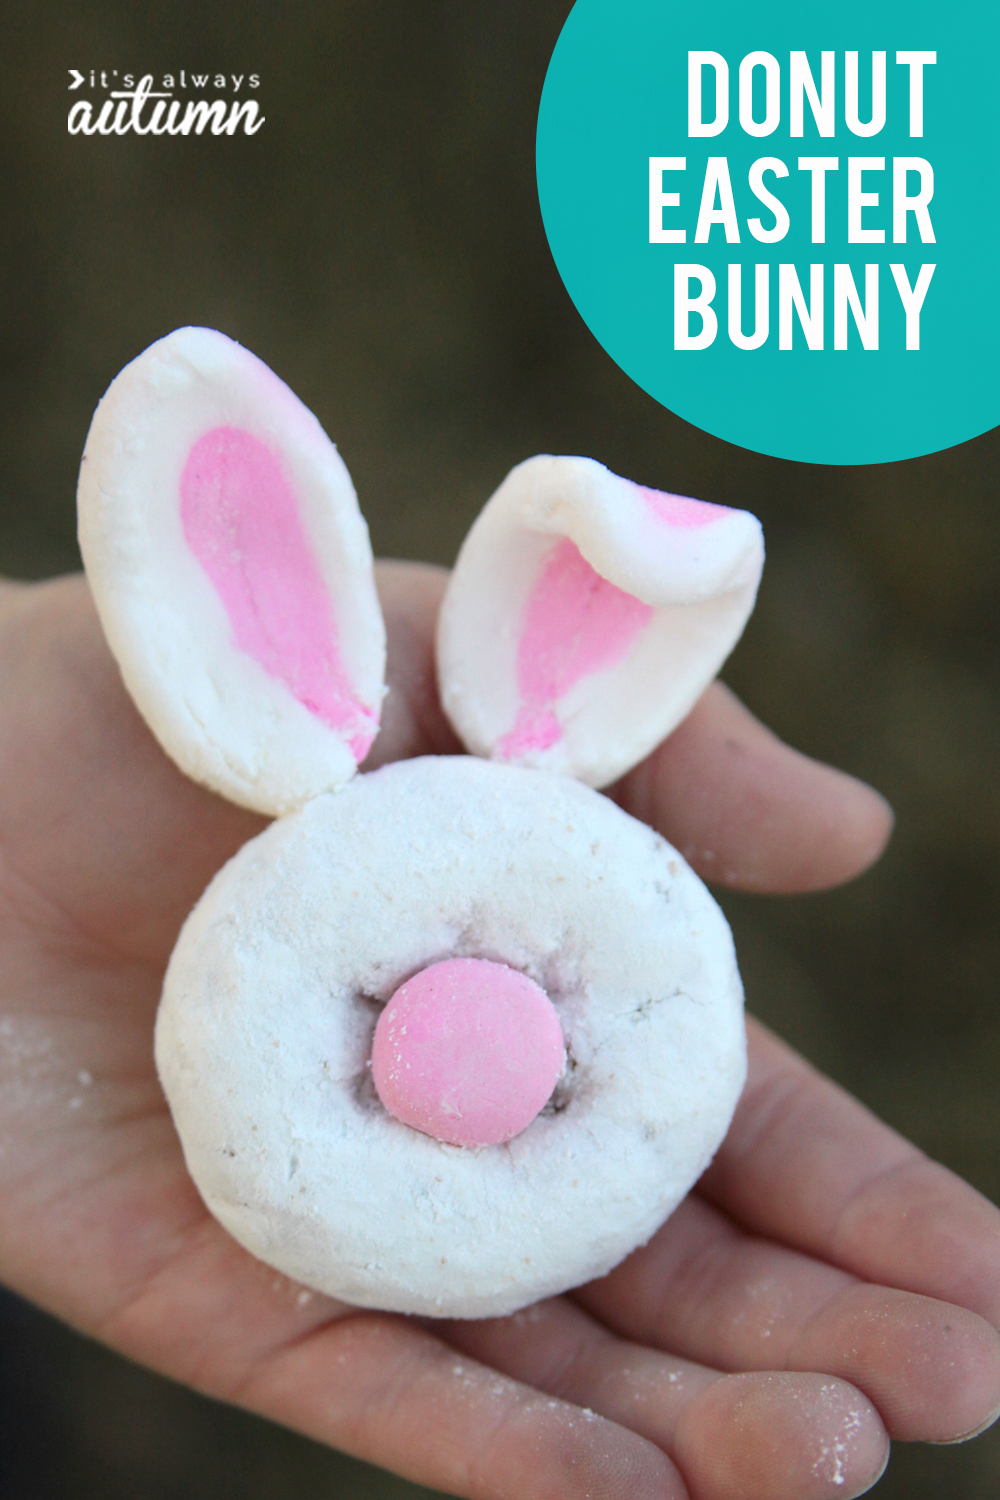 Donut Easter bunnies! Fun Easter food craft for kids.